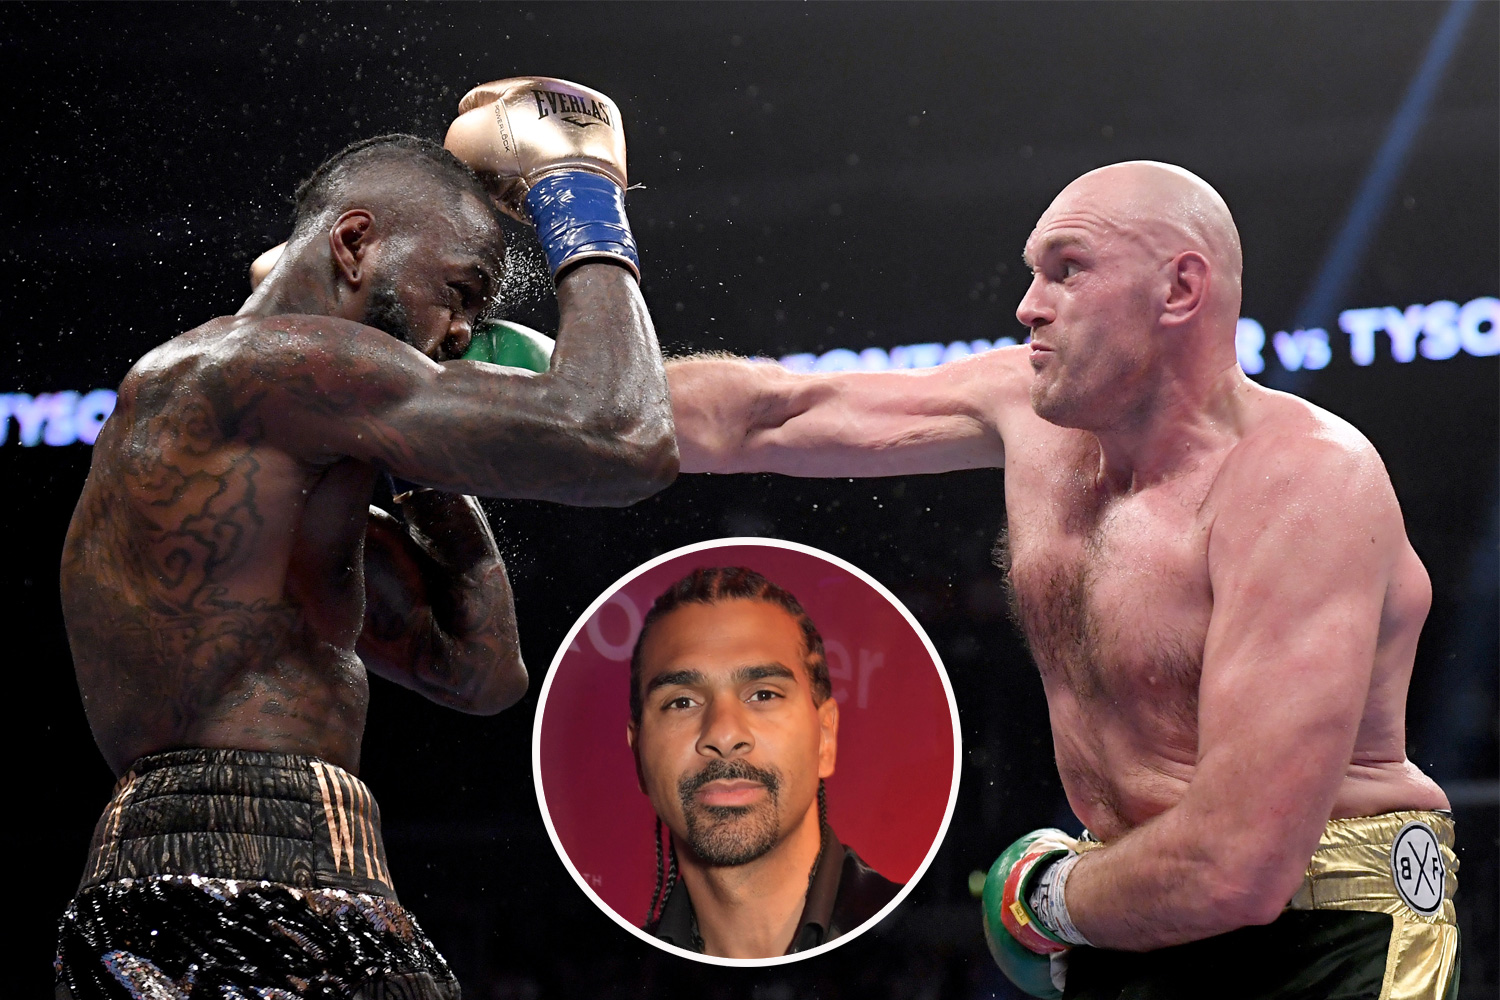 David Haye warns Tyson Fury he's putting his life on line as he chases WBC belt in Deontay Wilder rematch - The Sun